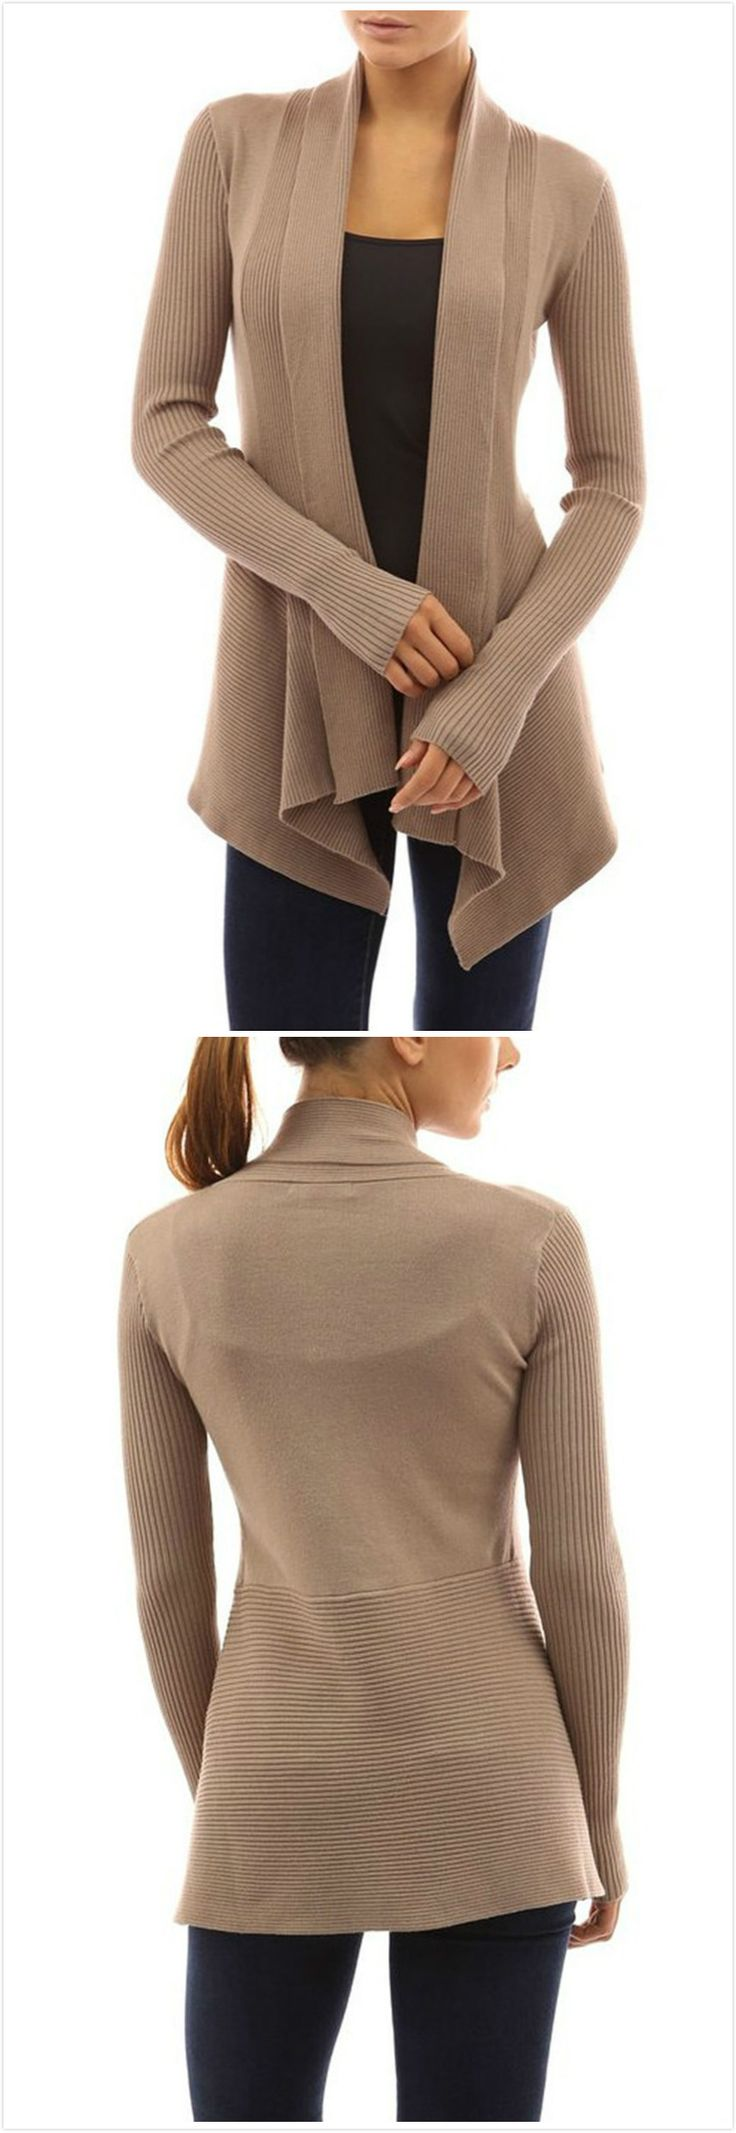 Like this sweater, not so much the color